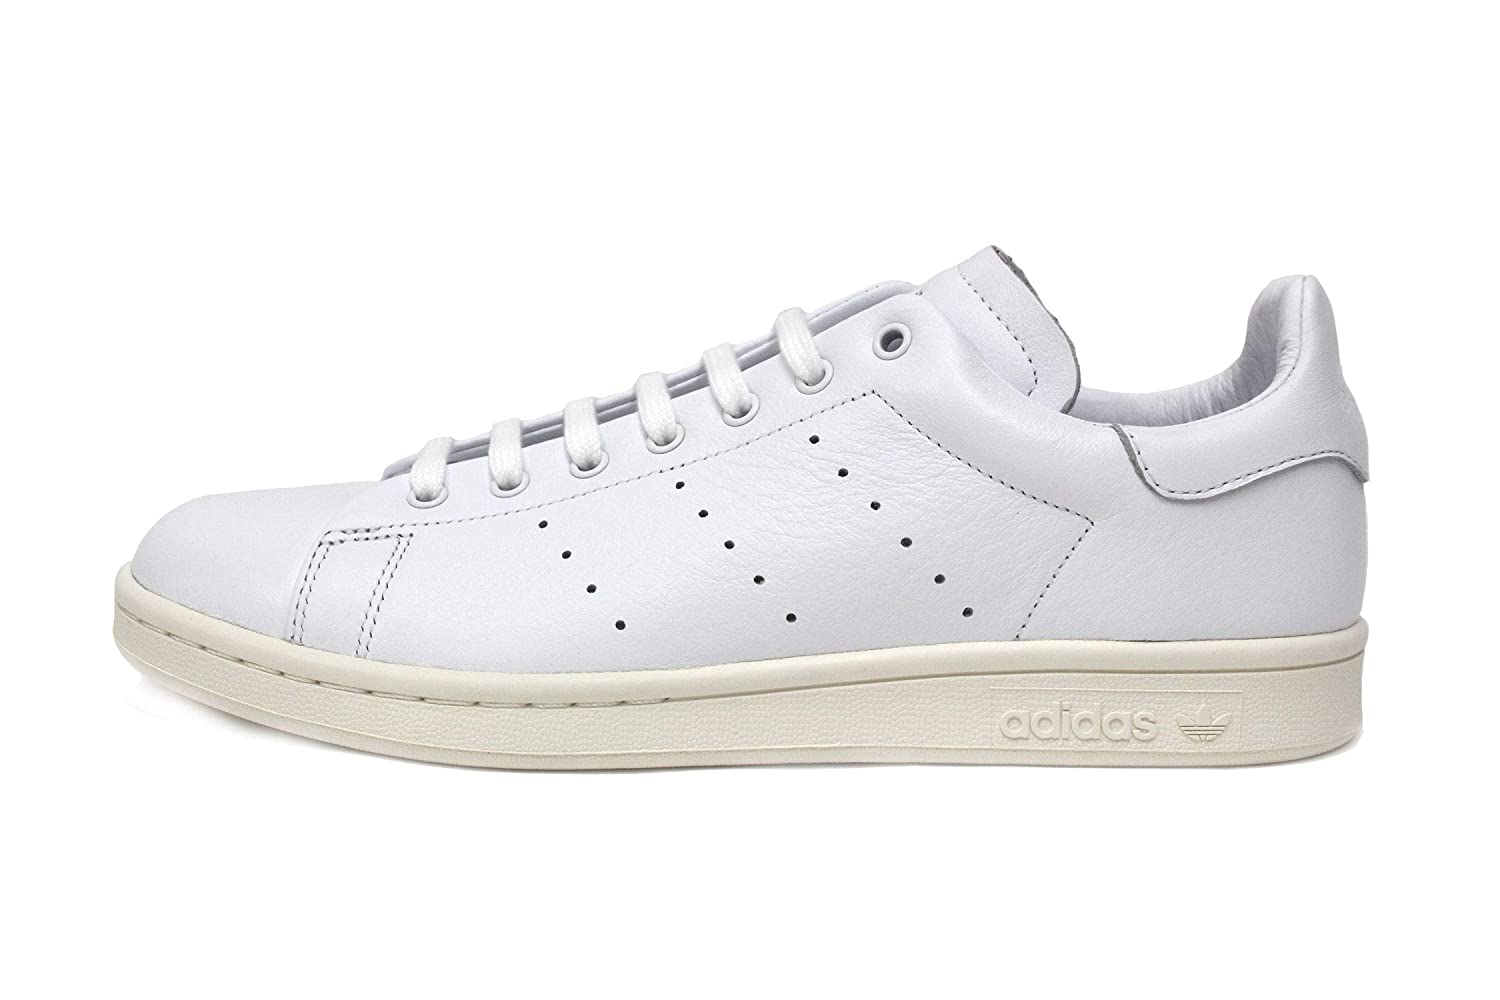 reputable site 84102 ae942 Amazon.com | adidas Stan Smith Recon Mens in Cloud White/Off ...